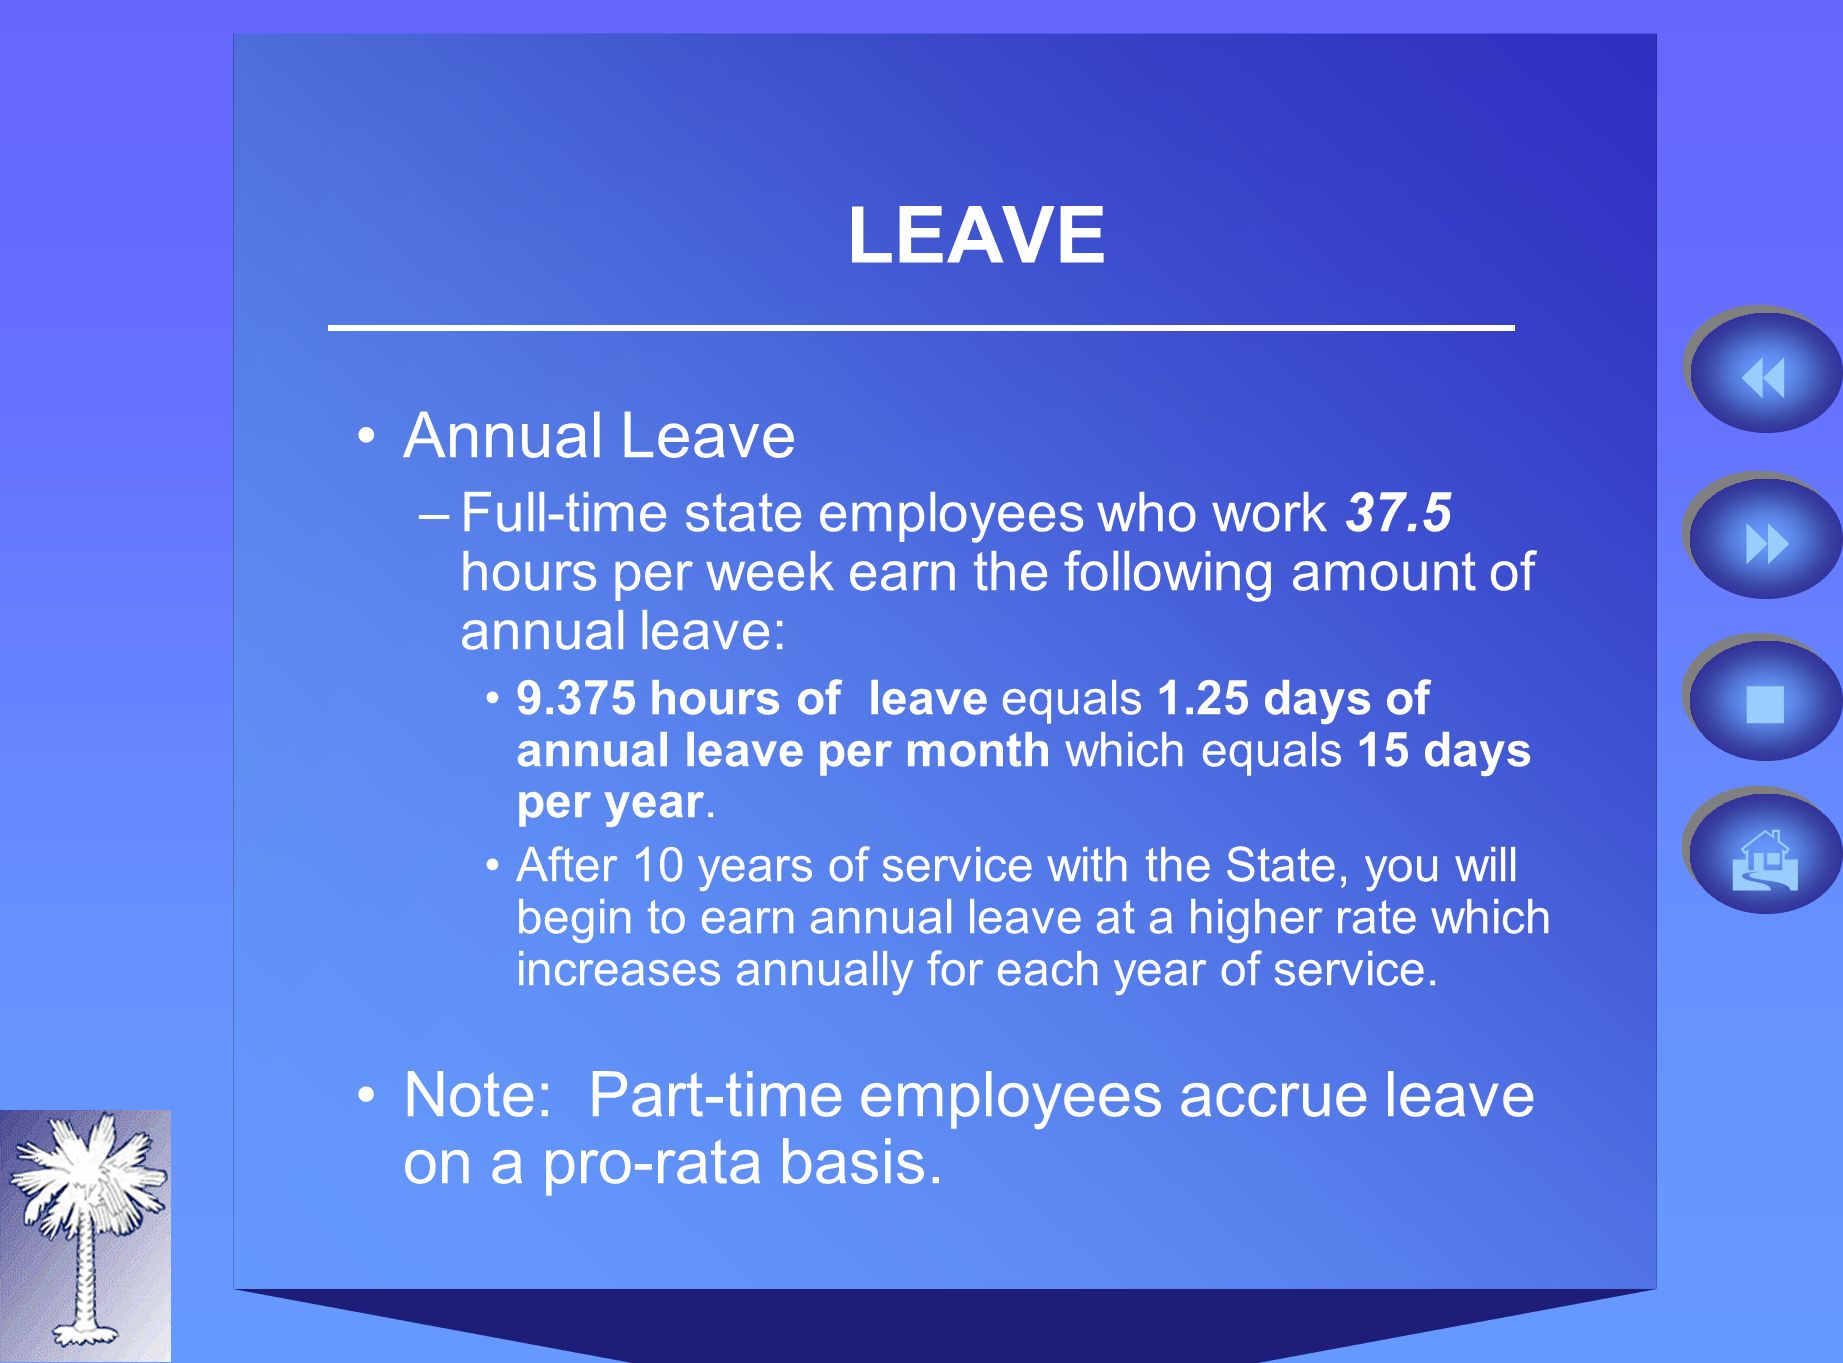 LEAVE Annual Leave –Full-time state employees who work 37.5 hours per week earn the following amount of annual leave: hours of leave equals 1.25 days of annual leave per month which equals 15 days per year.